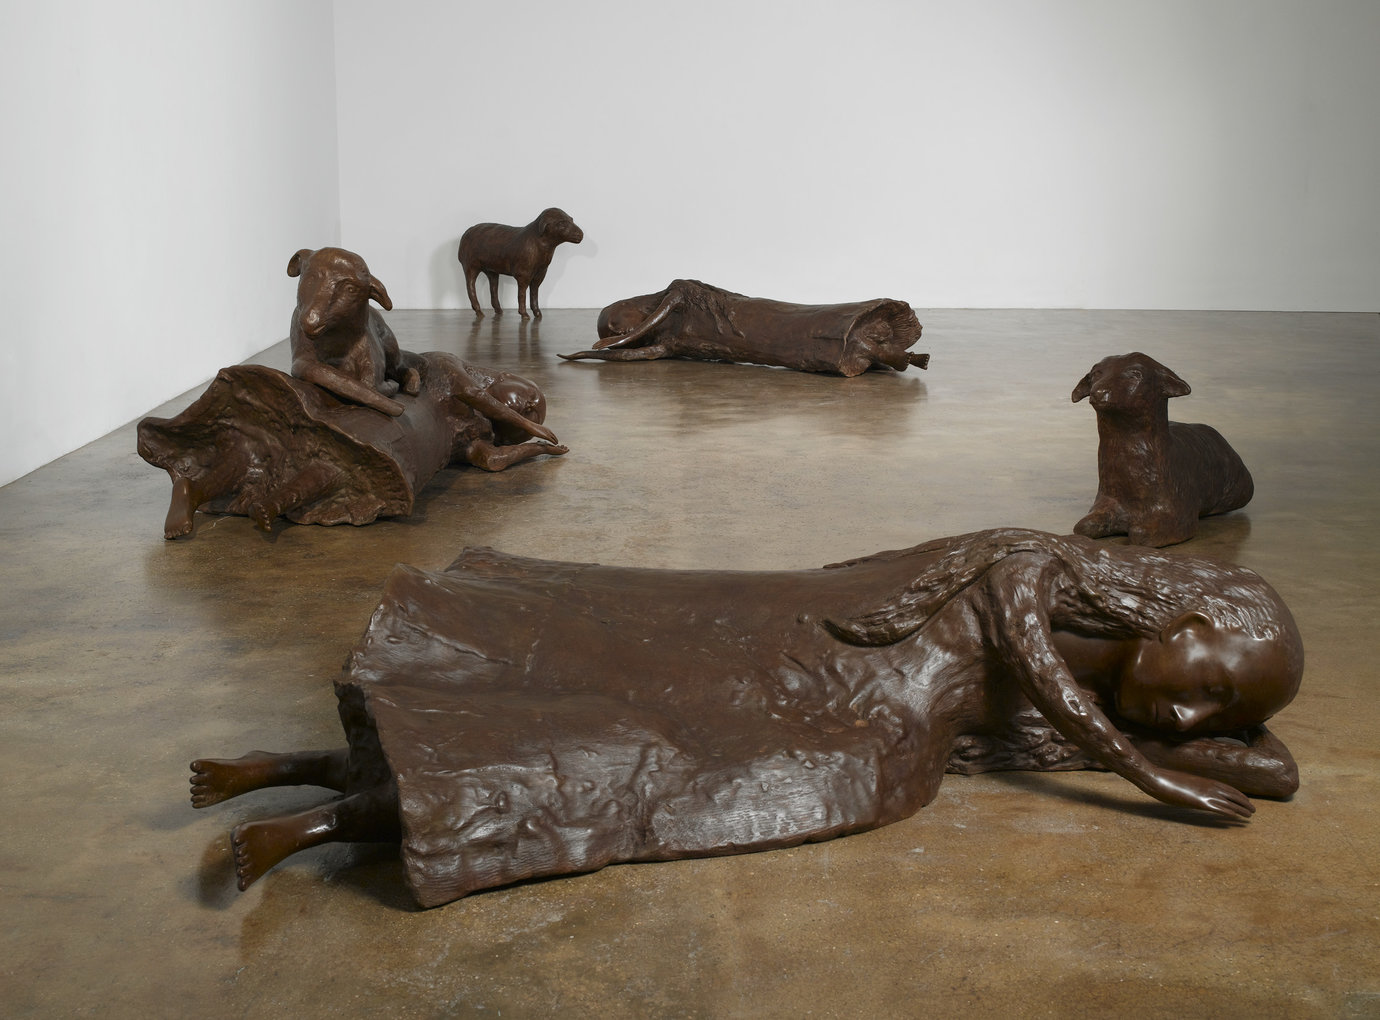 ", 2009. bronze, overall installation dimensions variable30-1/2"" x 13"" x 42"" (77.5 cm x 33 cm x 106.7 cm), standing sheep22-1/2"" x 40"" x 15"" (57.2 cm x 101.6 cm x 38.1 cm), resting sheep34"" x 82"" x 39"" (86.4 cm x 208.3 cm x 99.1 cm), woman with sheep17-3/4"" x 84"" ."